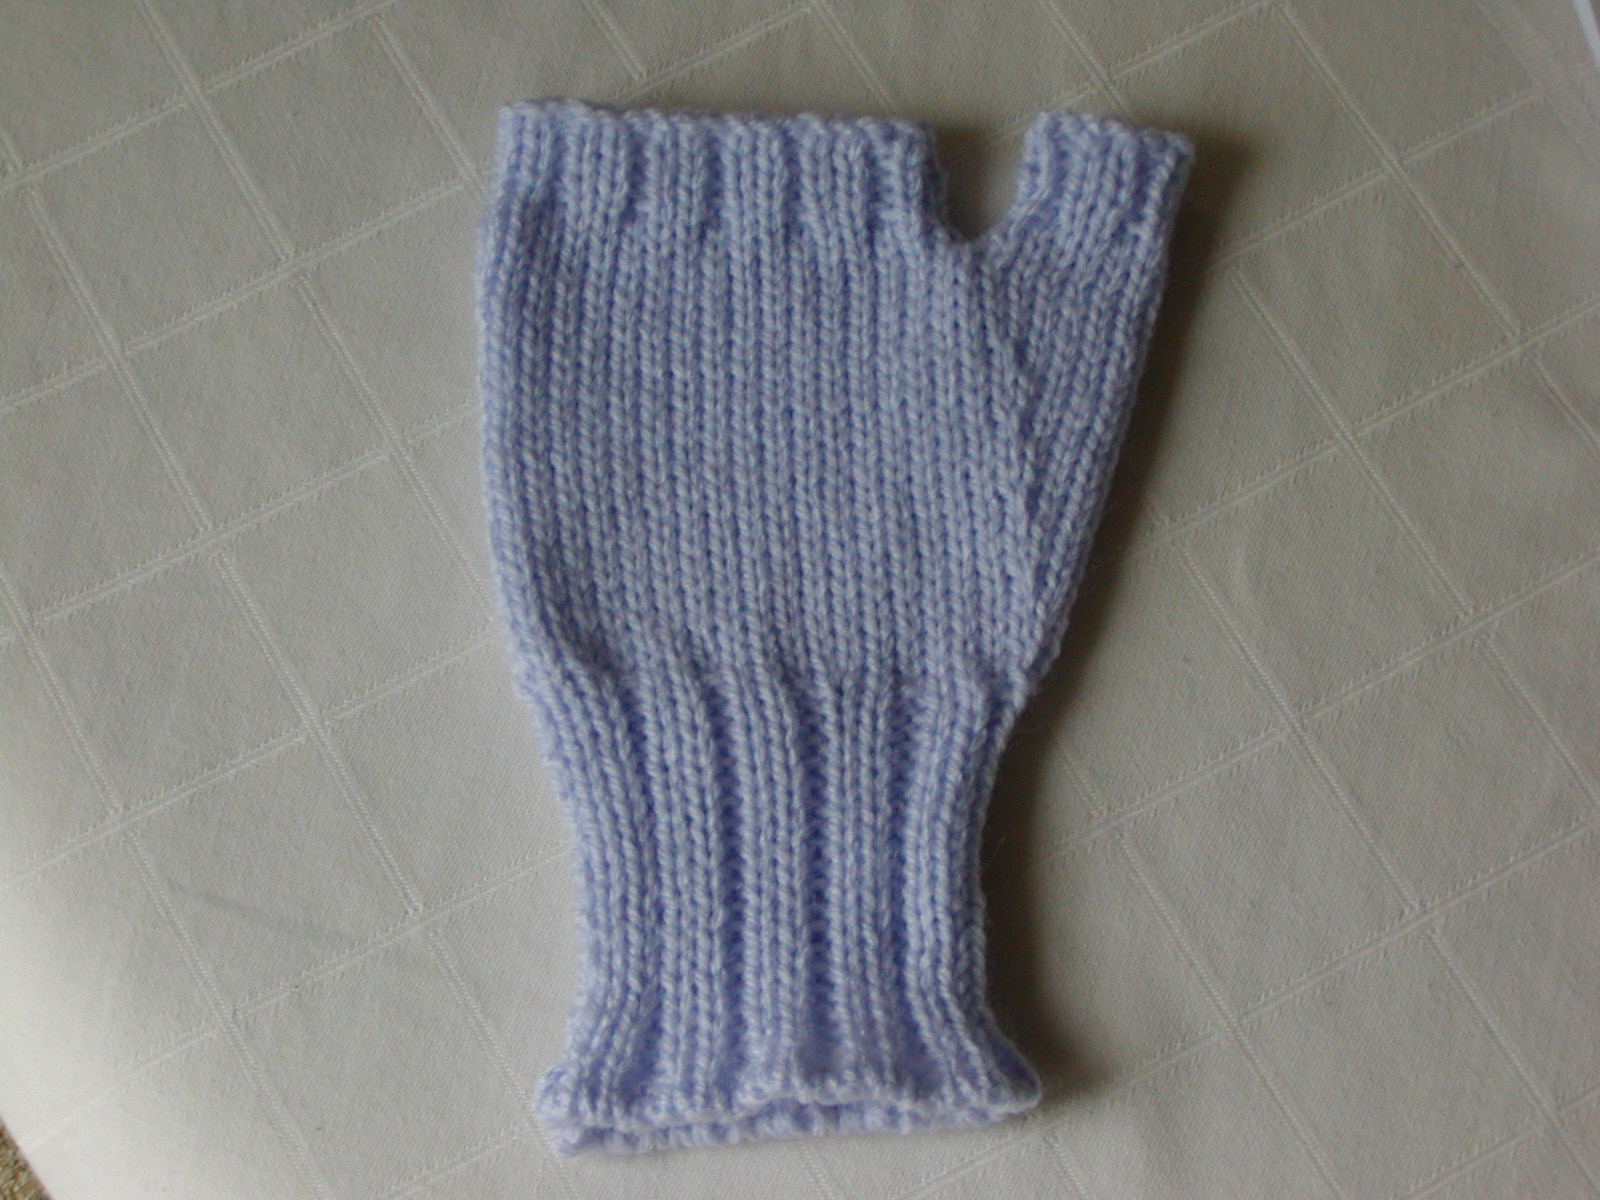 Fingerless Gloves Knitting Pattern Circular Needles Best Design